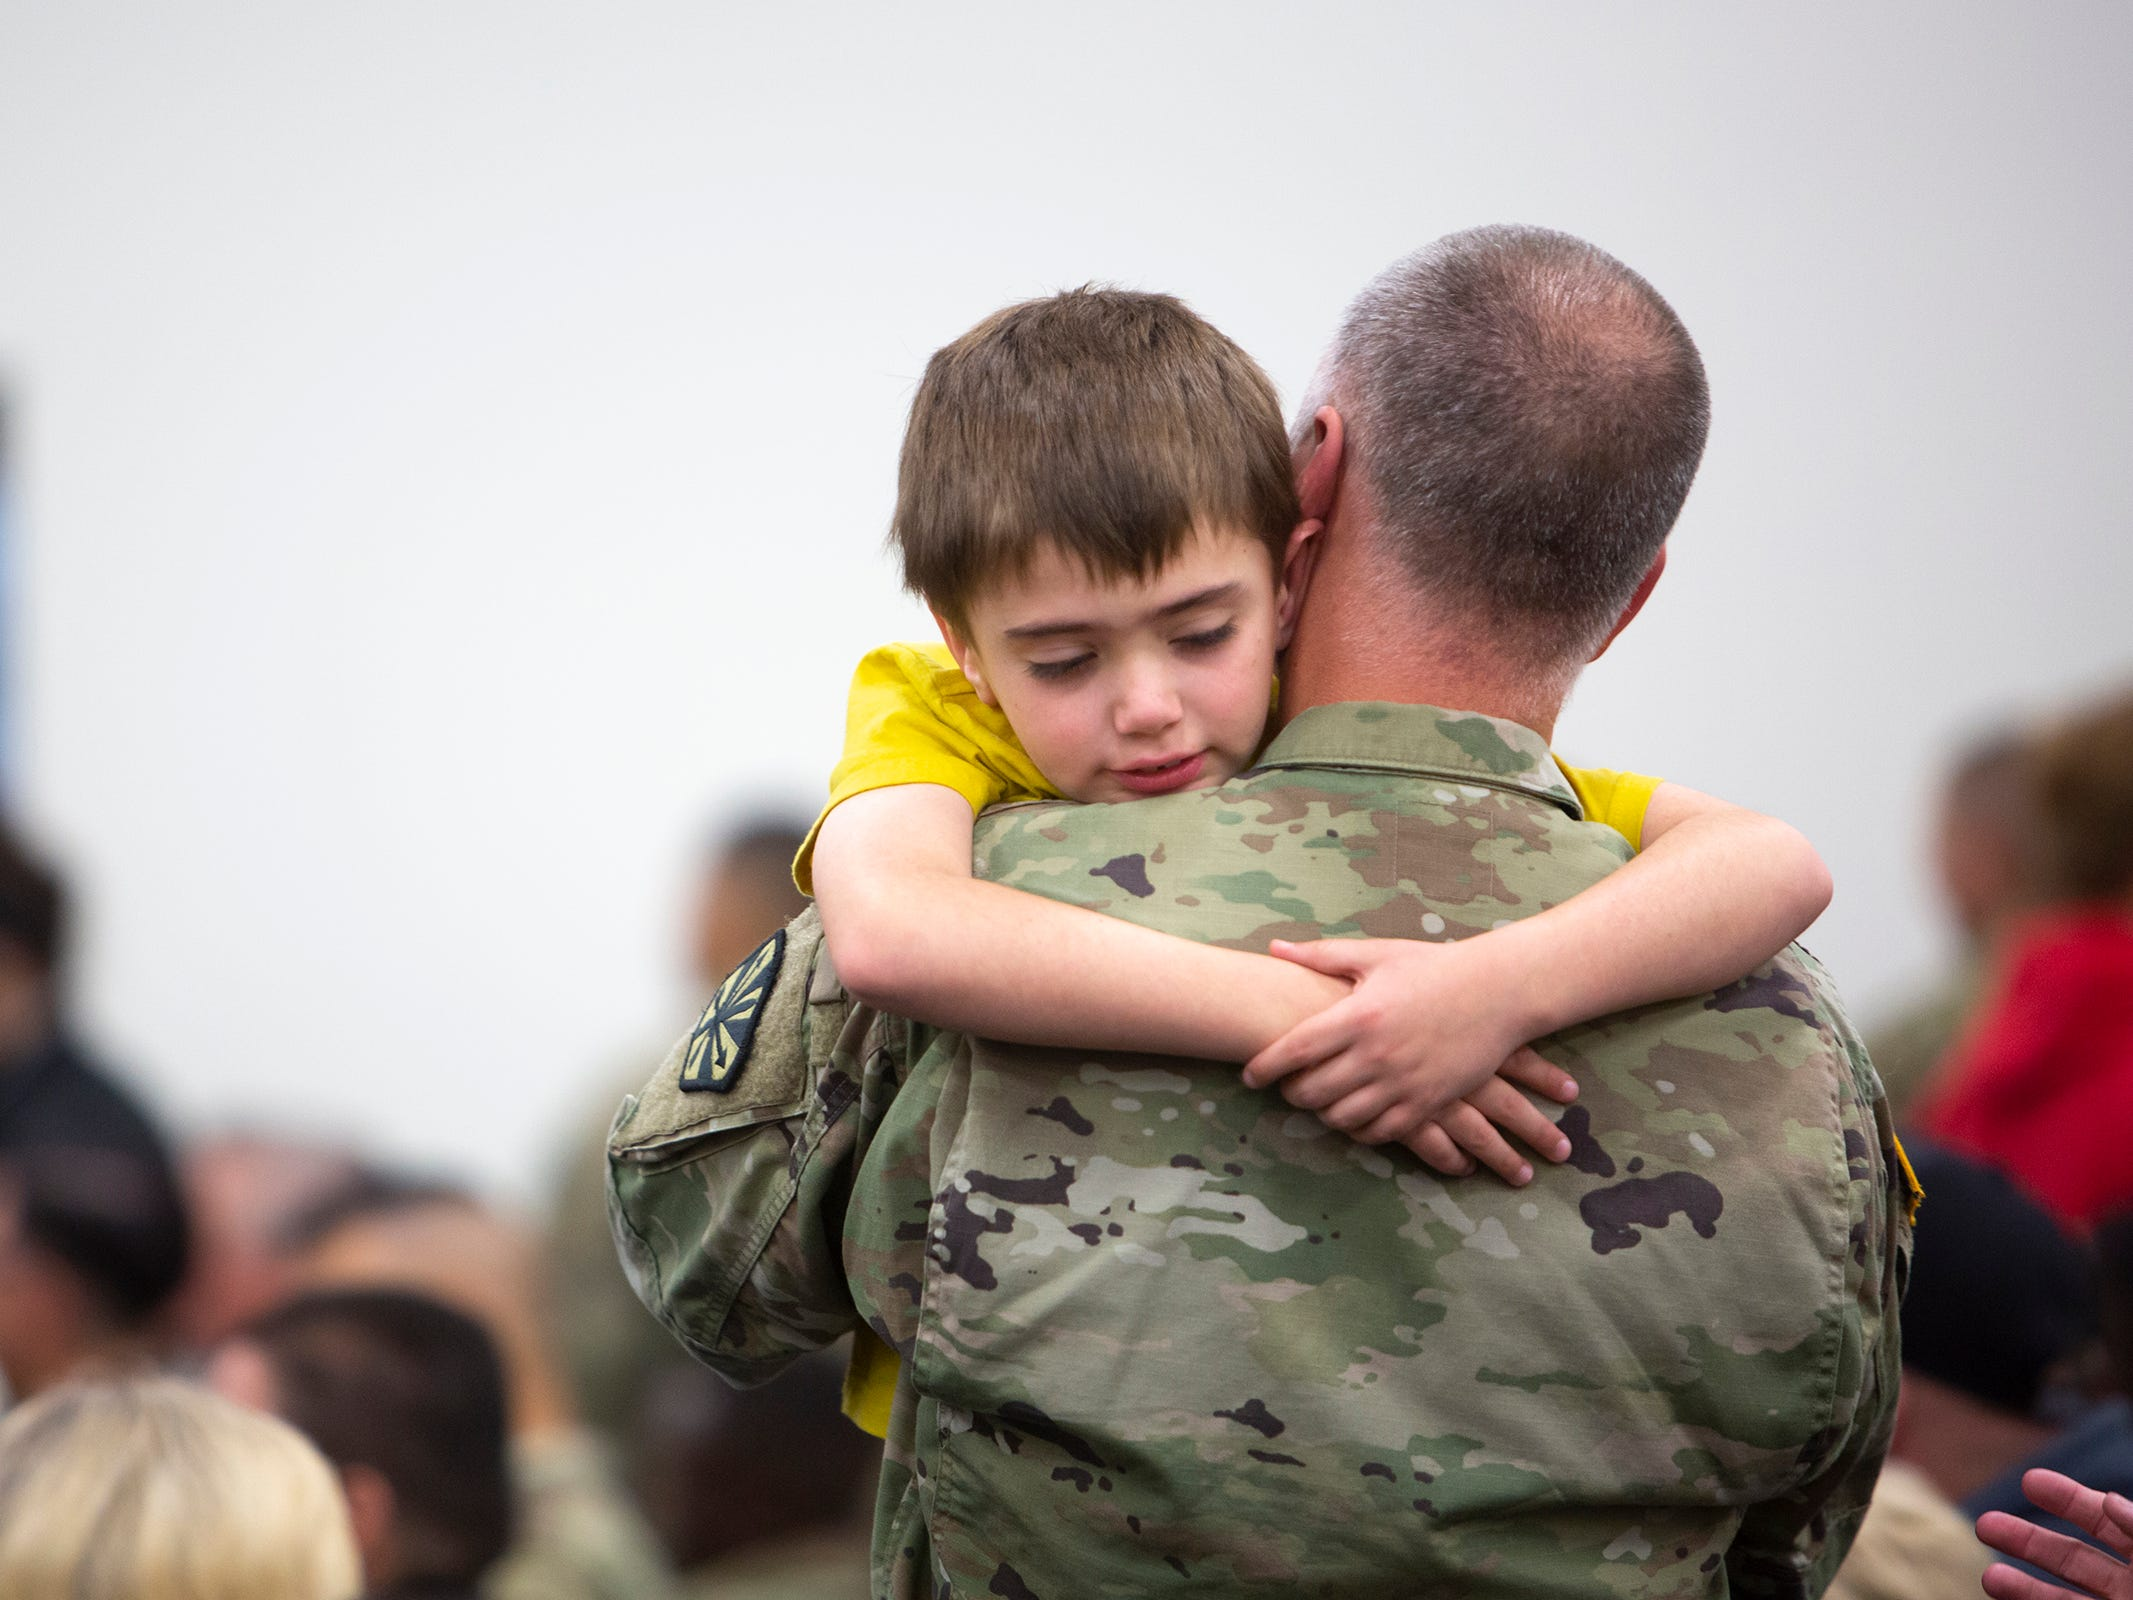 Skeet Bowman, 8, gives his father Staff Sgt. Jason Bowman a hug before the deployment ceremony for the 253rd Engineer Battalion at Papago Park Military Reservation on Sunday, Feb. 24, 2019. The soldiers boarded buses immediately after the ceremony.